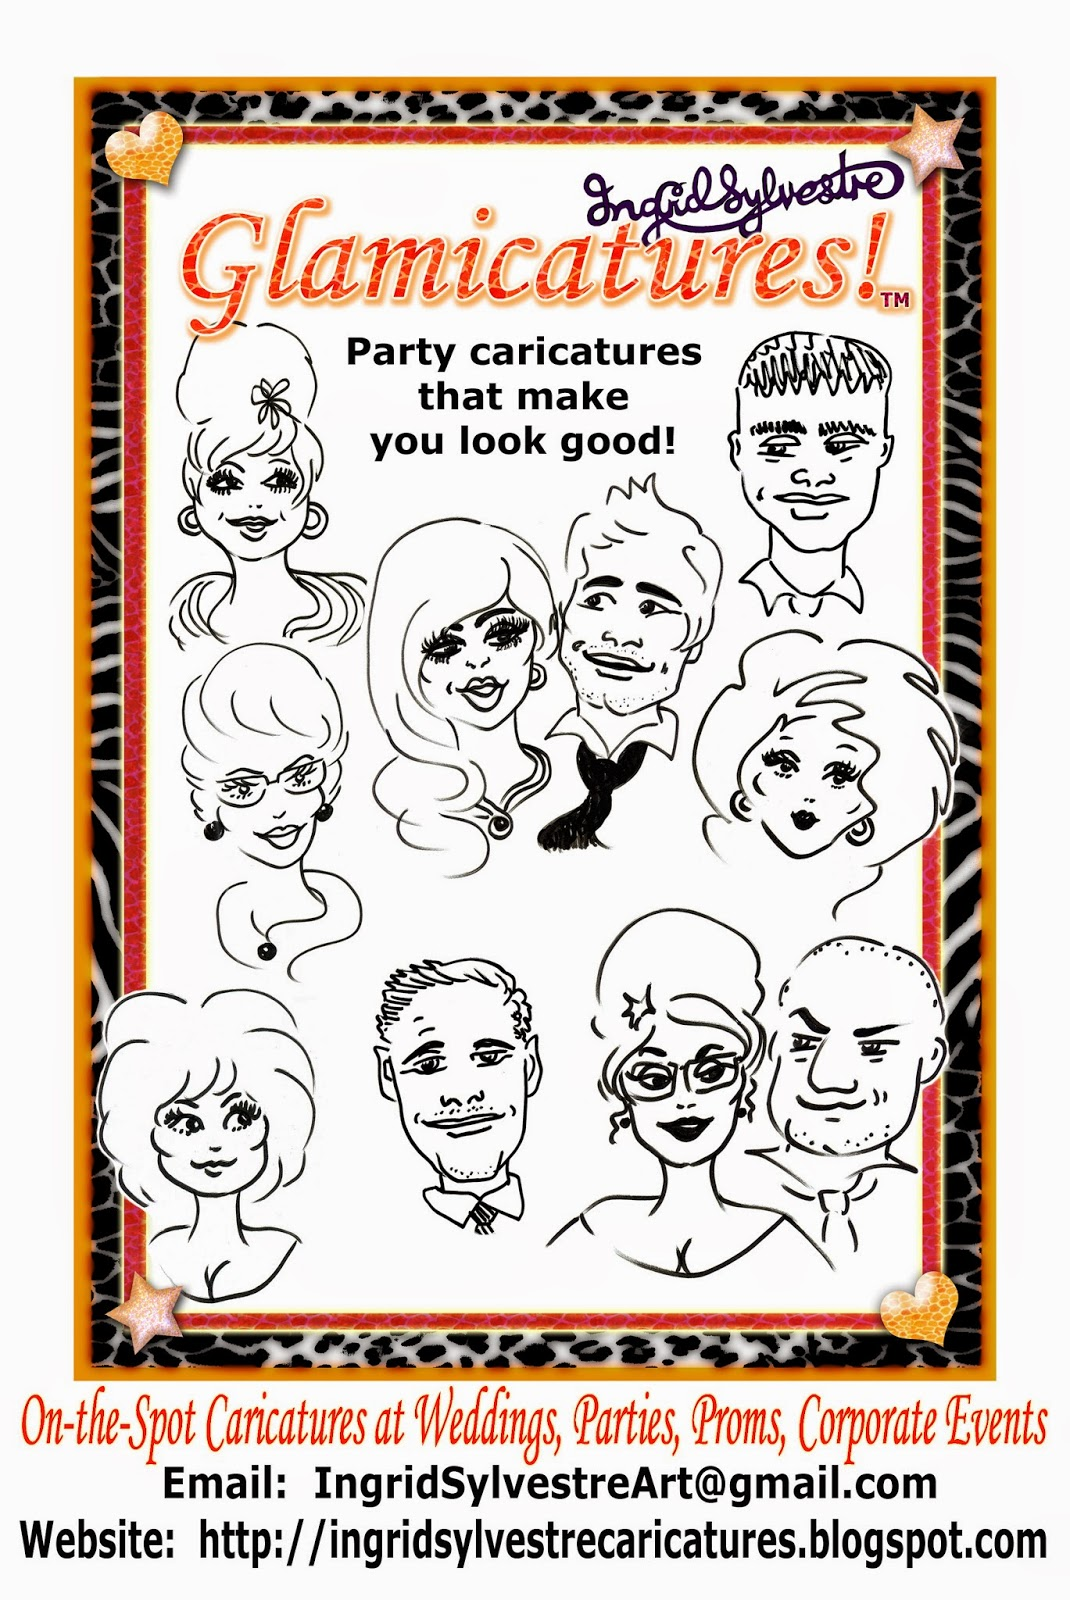 Wedding Entertainment ideas Party Entertainment Christmas Party Entertainment Corporate Events Wedding Caricatures and Silhouettes Ingrid Sylvestre UK caricaturist & silhouette artist North East Newcastle upon Tyne Durham Sunderland Middlesbrough Teesside Northumberland Yorkshire